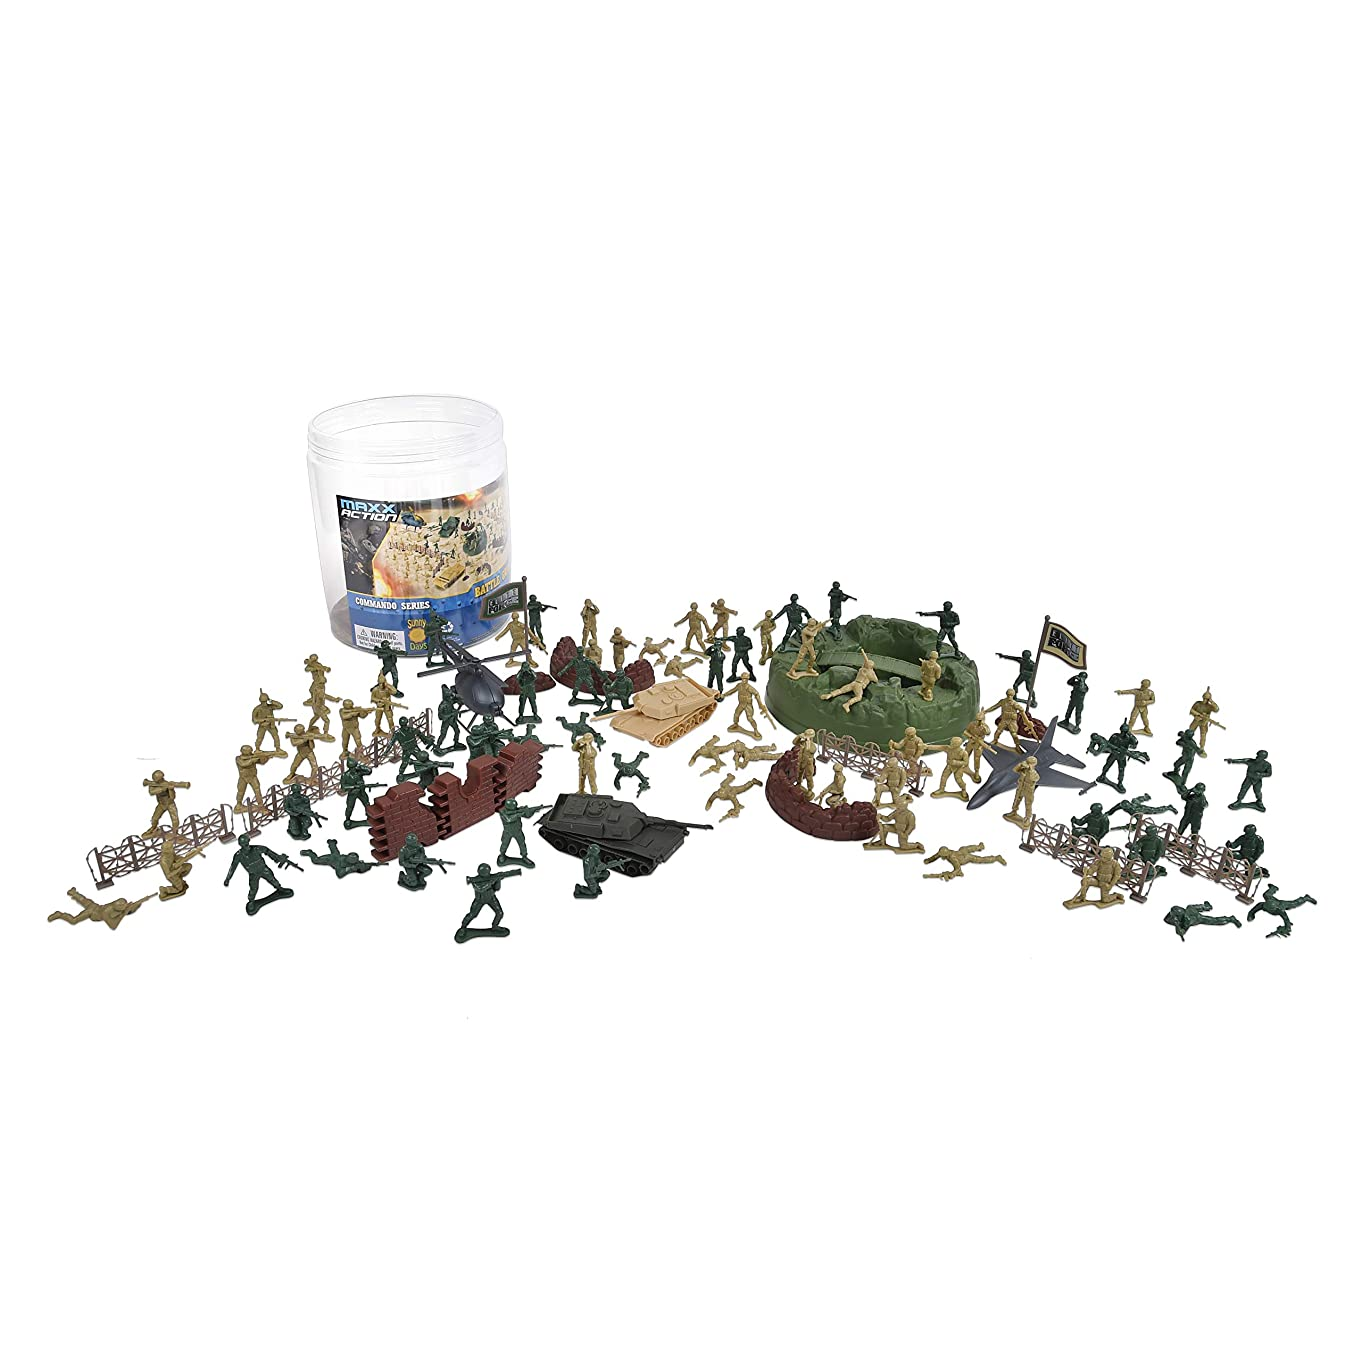 Elite Force 100-Pieced Military Soldier Battle Group Army Man Play Bucket Playset with Tanks, Trucks, Helicopters, Border Walls, Fences, Soldiers and Other Battlefield Equipment